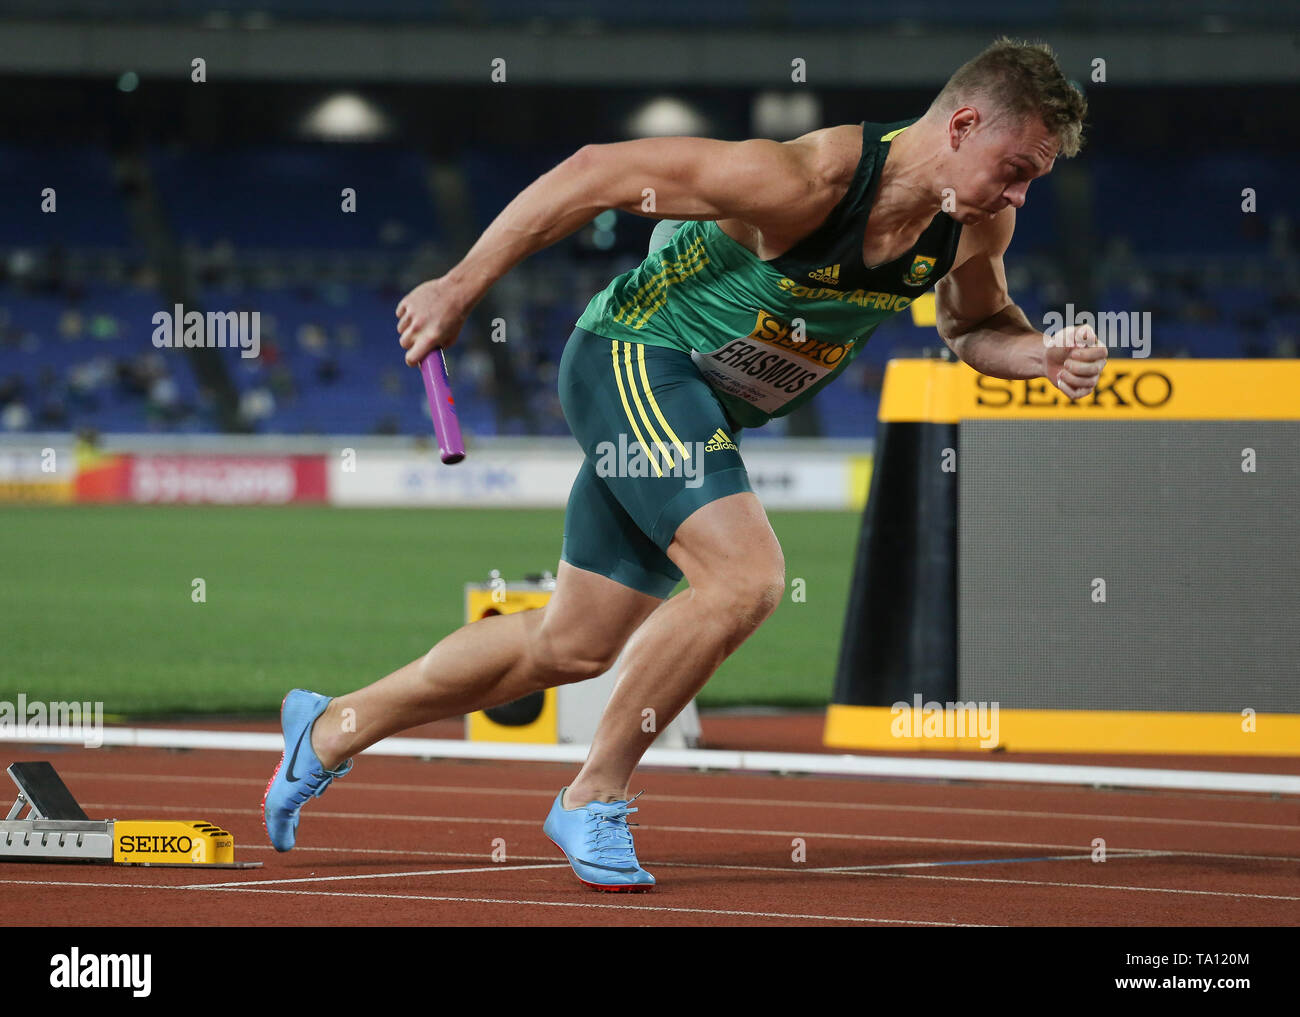 YOKOHAMA, JAPAN - MAY 11: Emile Erasmus of South Africa at the start of the mens 4x100m relay during day 1 of the IAAF World Relays at Nissan Stadium on May 11, 2019 in Yokohama, Japan. (Photo by Roger Sedres/Gallo Images) - Stock Image